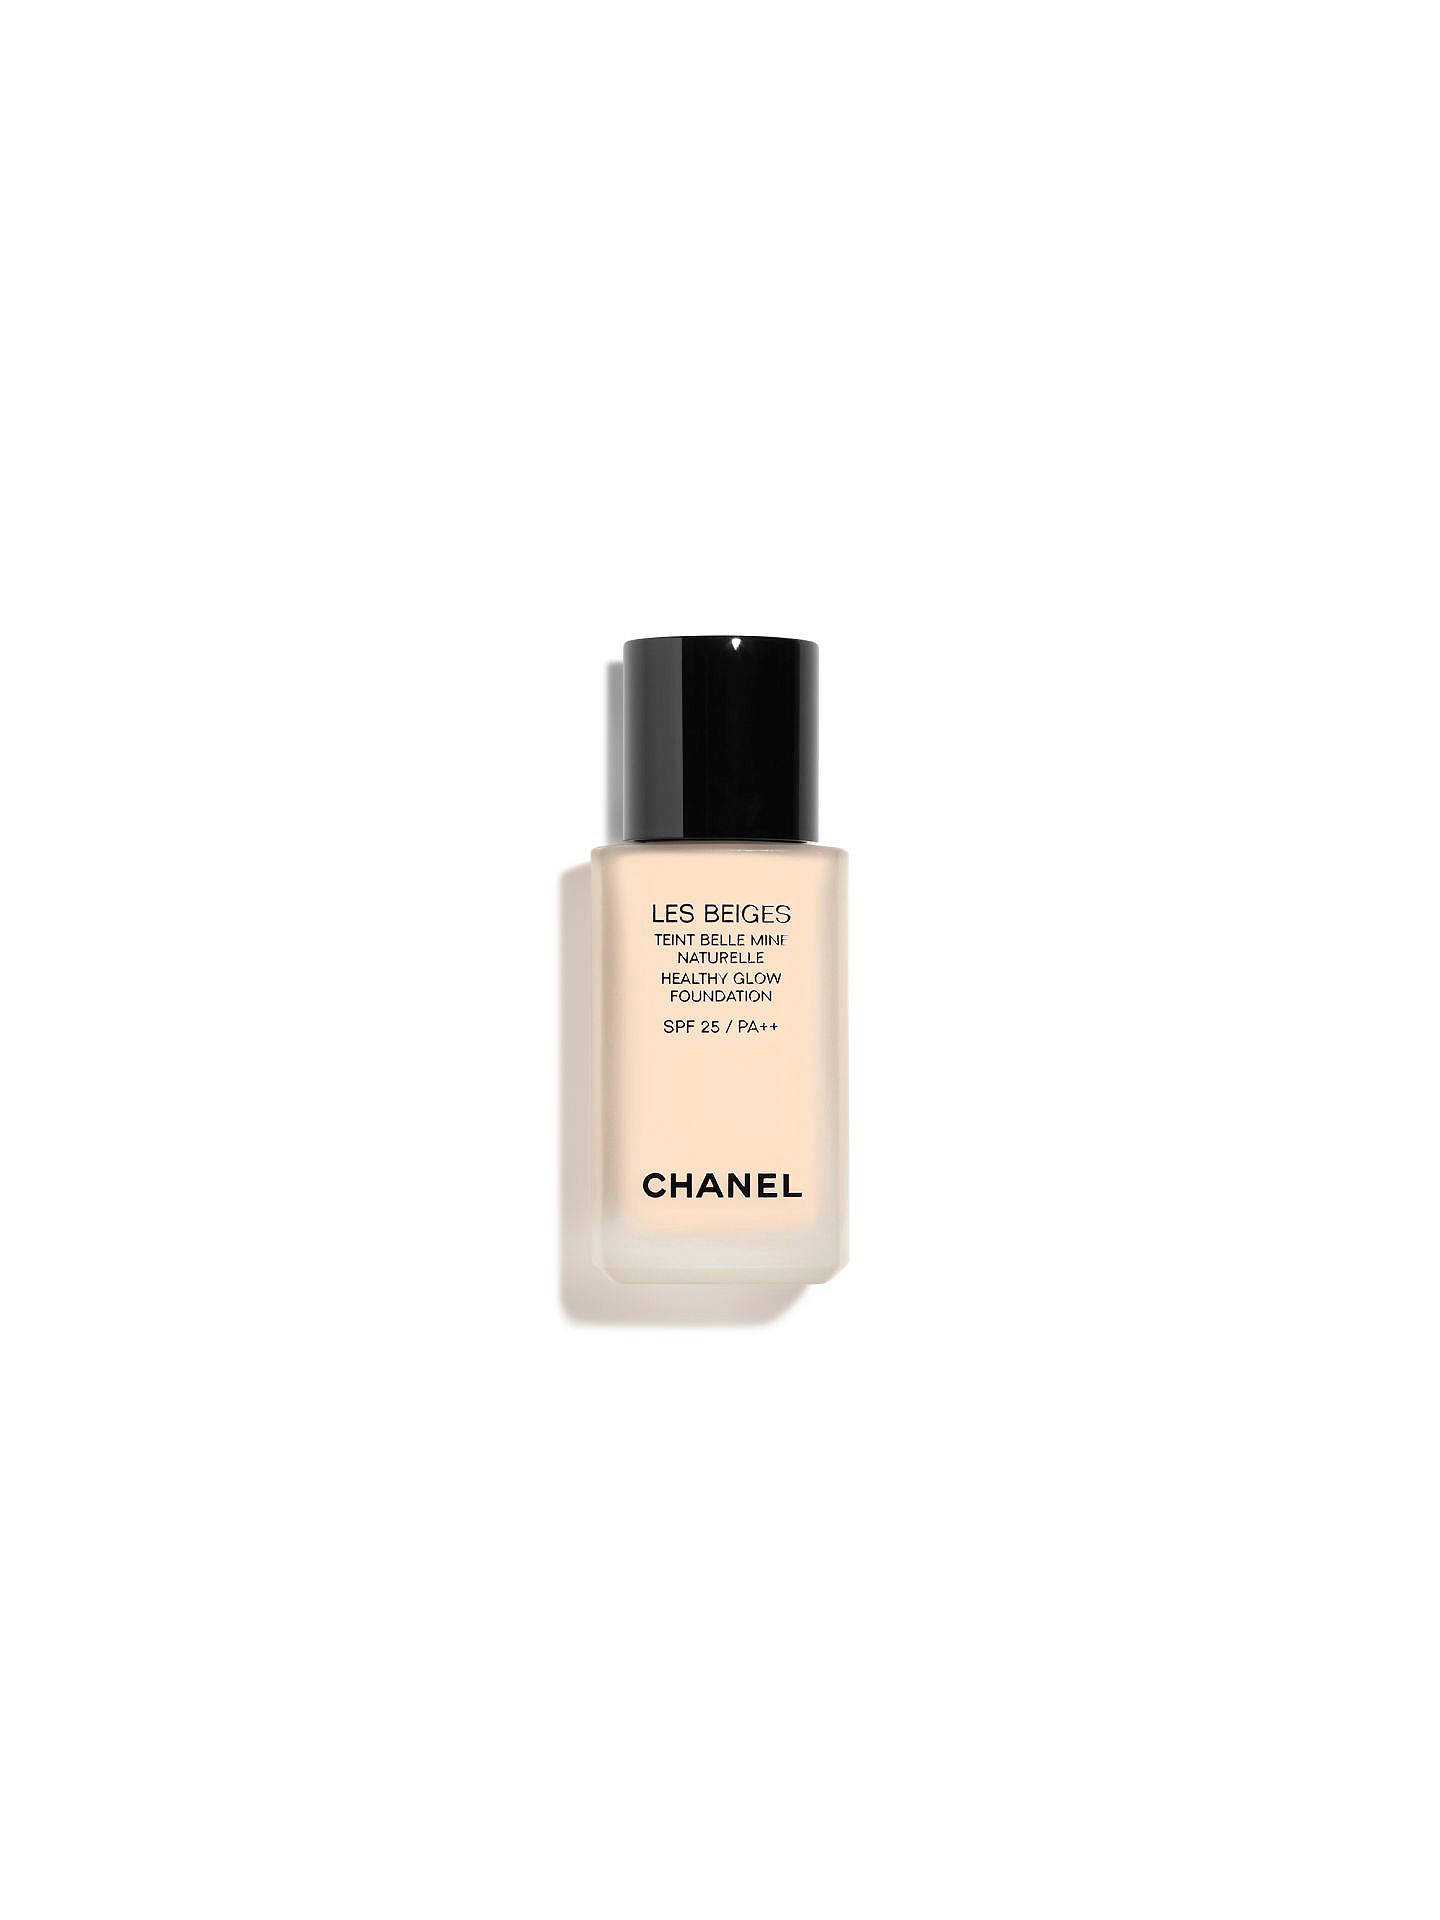 Buy CHANEL Les Beiges Healthy Glow Foundation SPF 25 / PA++, N°10 Online at johnlewis.com